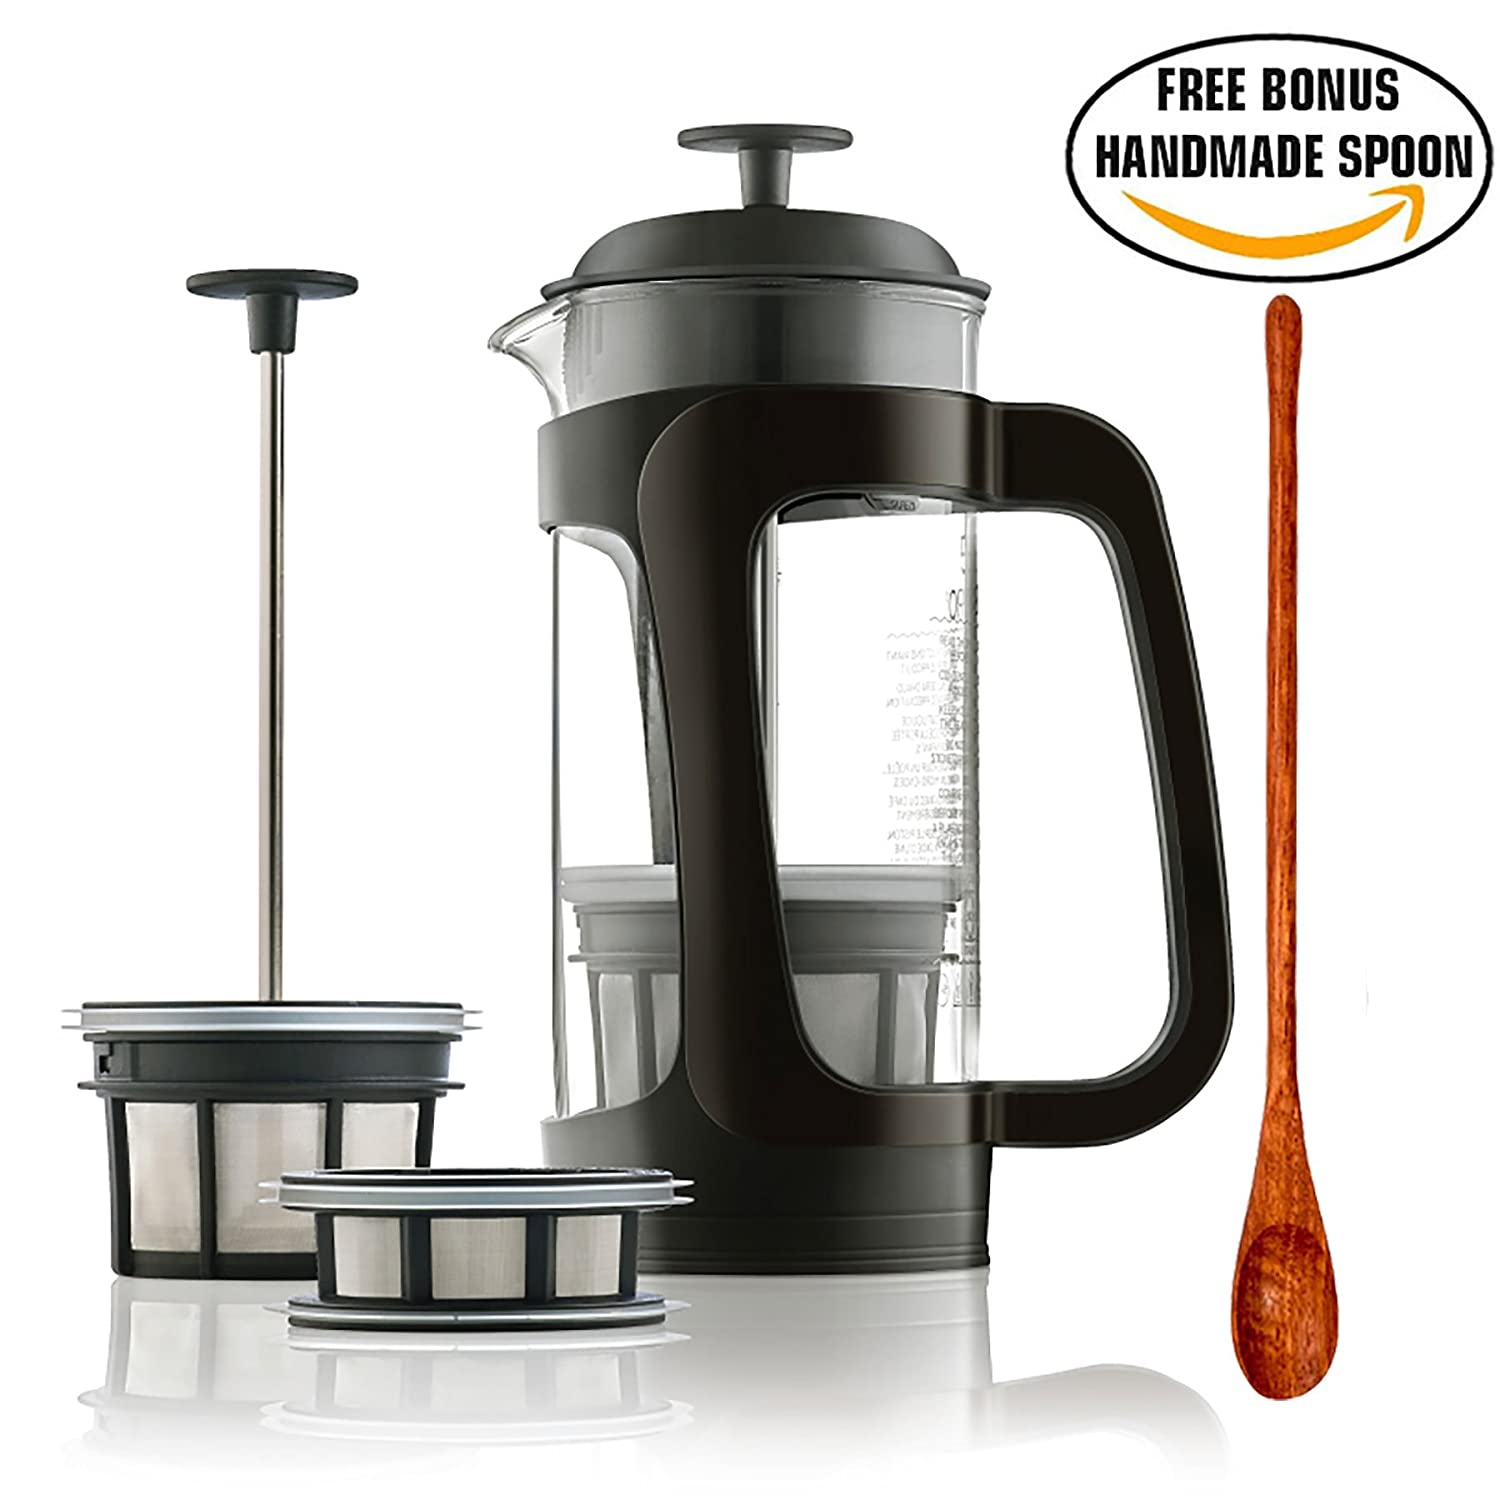 Espro P3 - French Press Coffee Maker with Thick & Durable SCHOTT Duran glass + Bonus Wooden Stirring Spoon